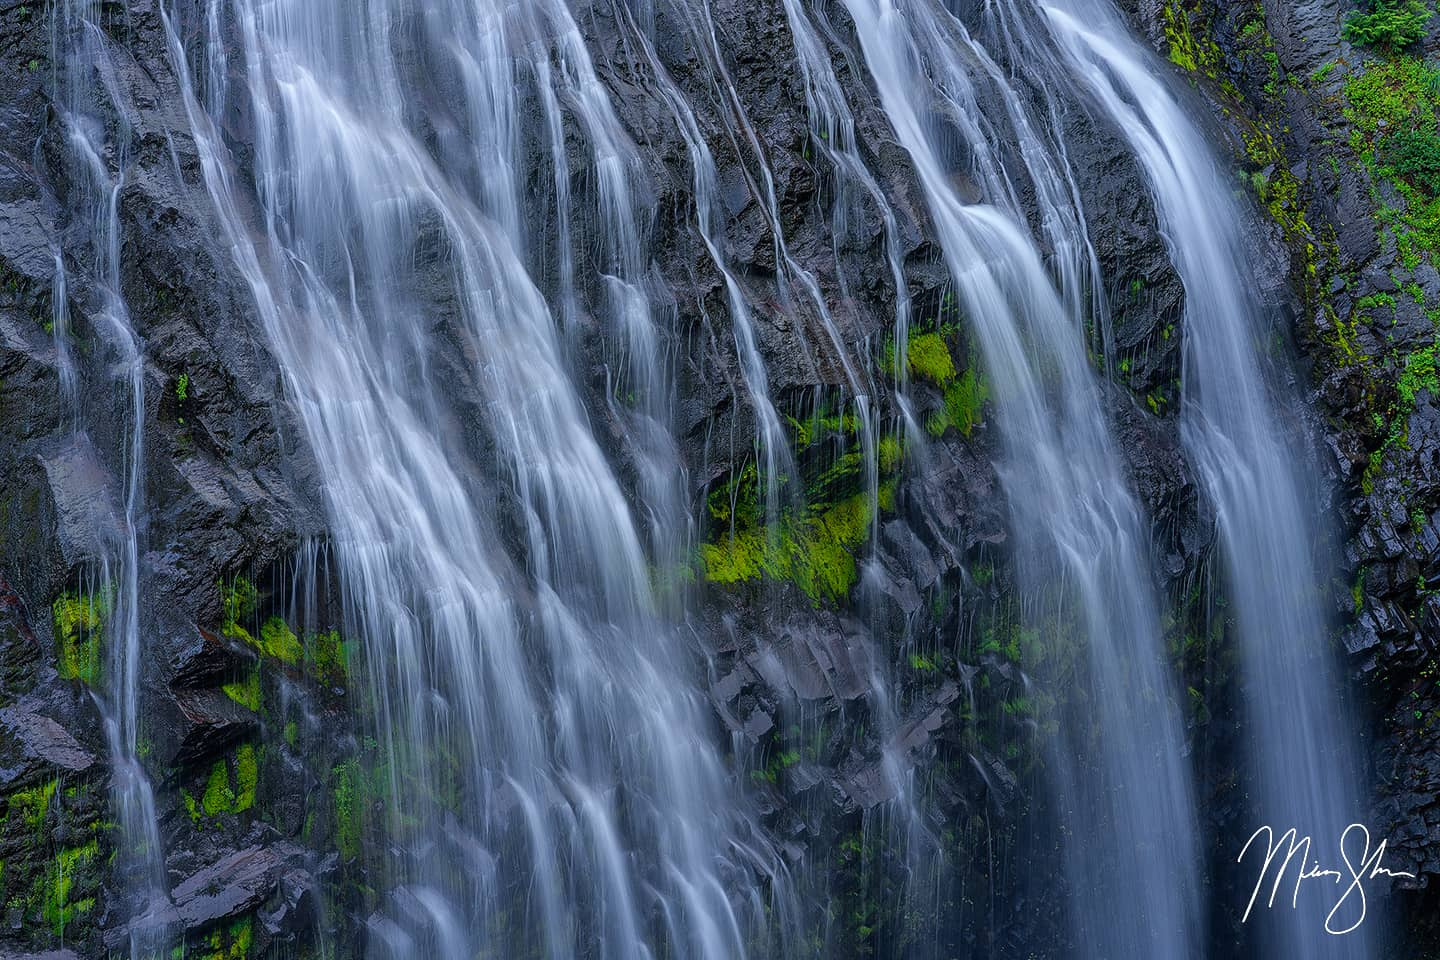 Limited edition luxury fine art print of Silk from Mickey Shannon Photography. Location: Narada Falls, Mount Rainier National Park, Washington